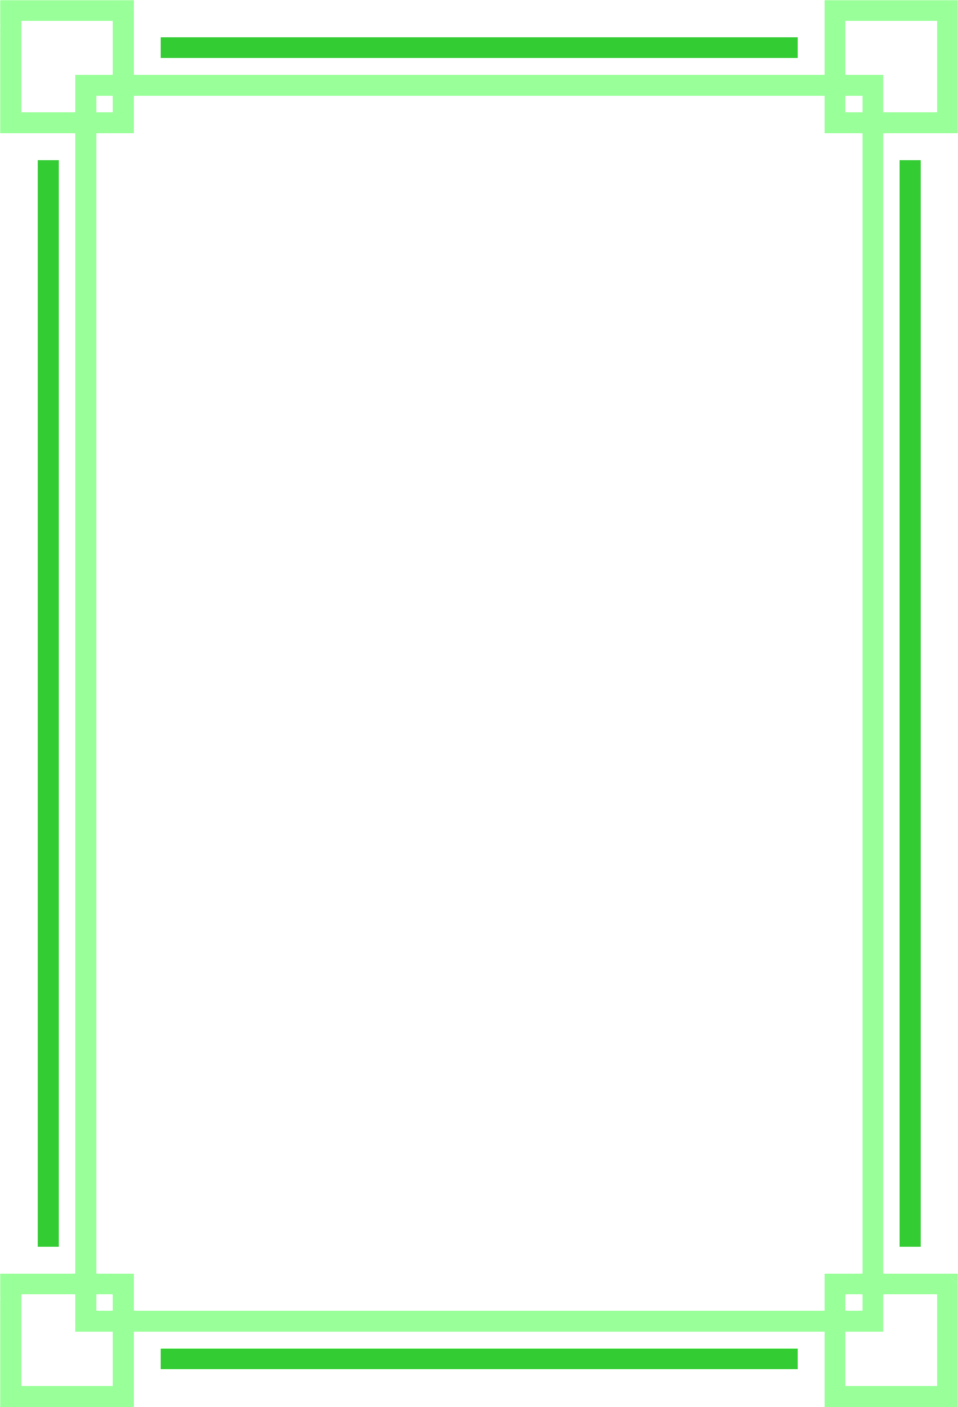 Green borders png. Illustration of a blank